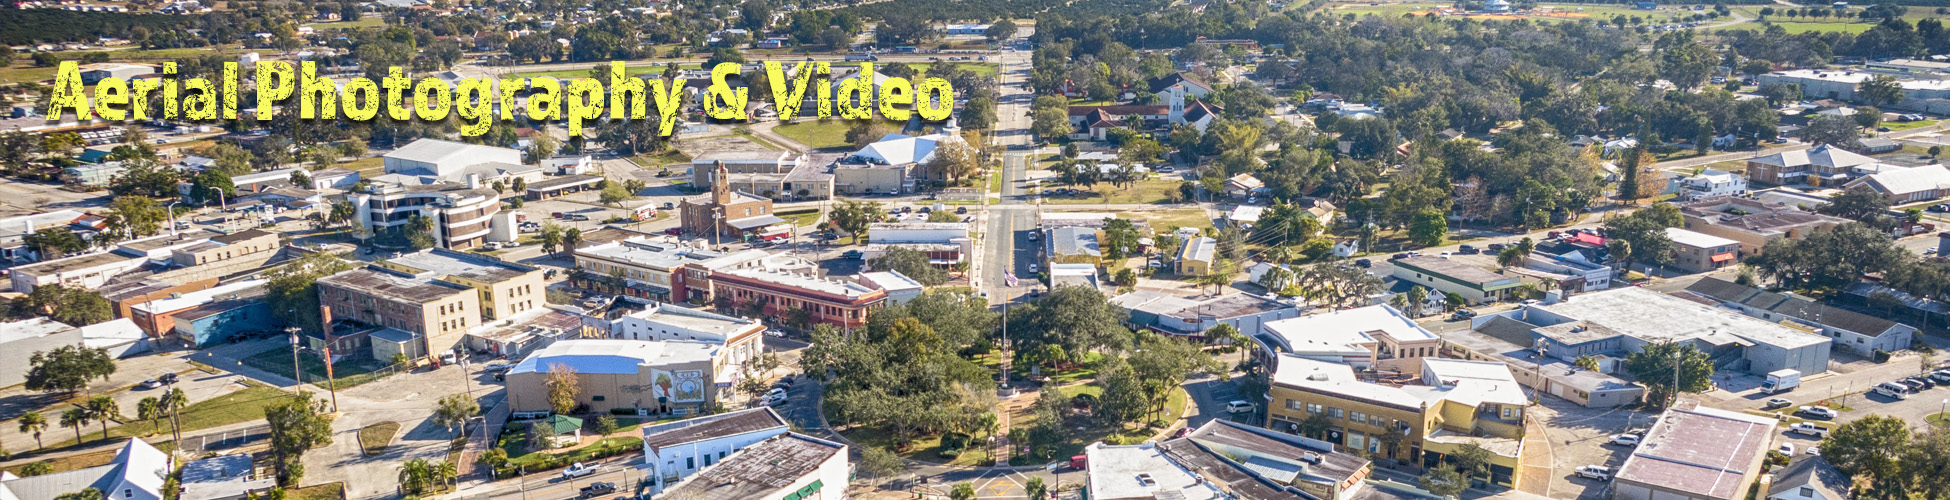 Aerial Photo of the Sebring Cirle Downtown Sebring, Florida